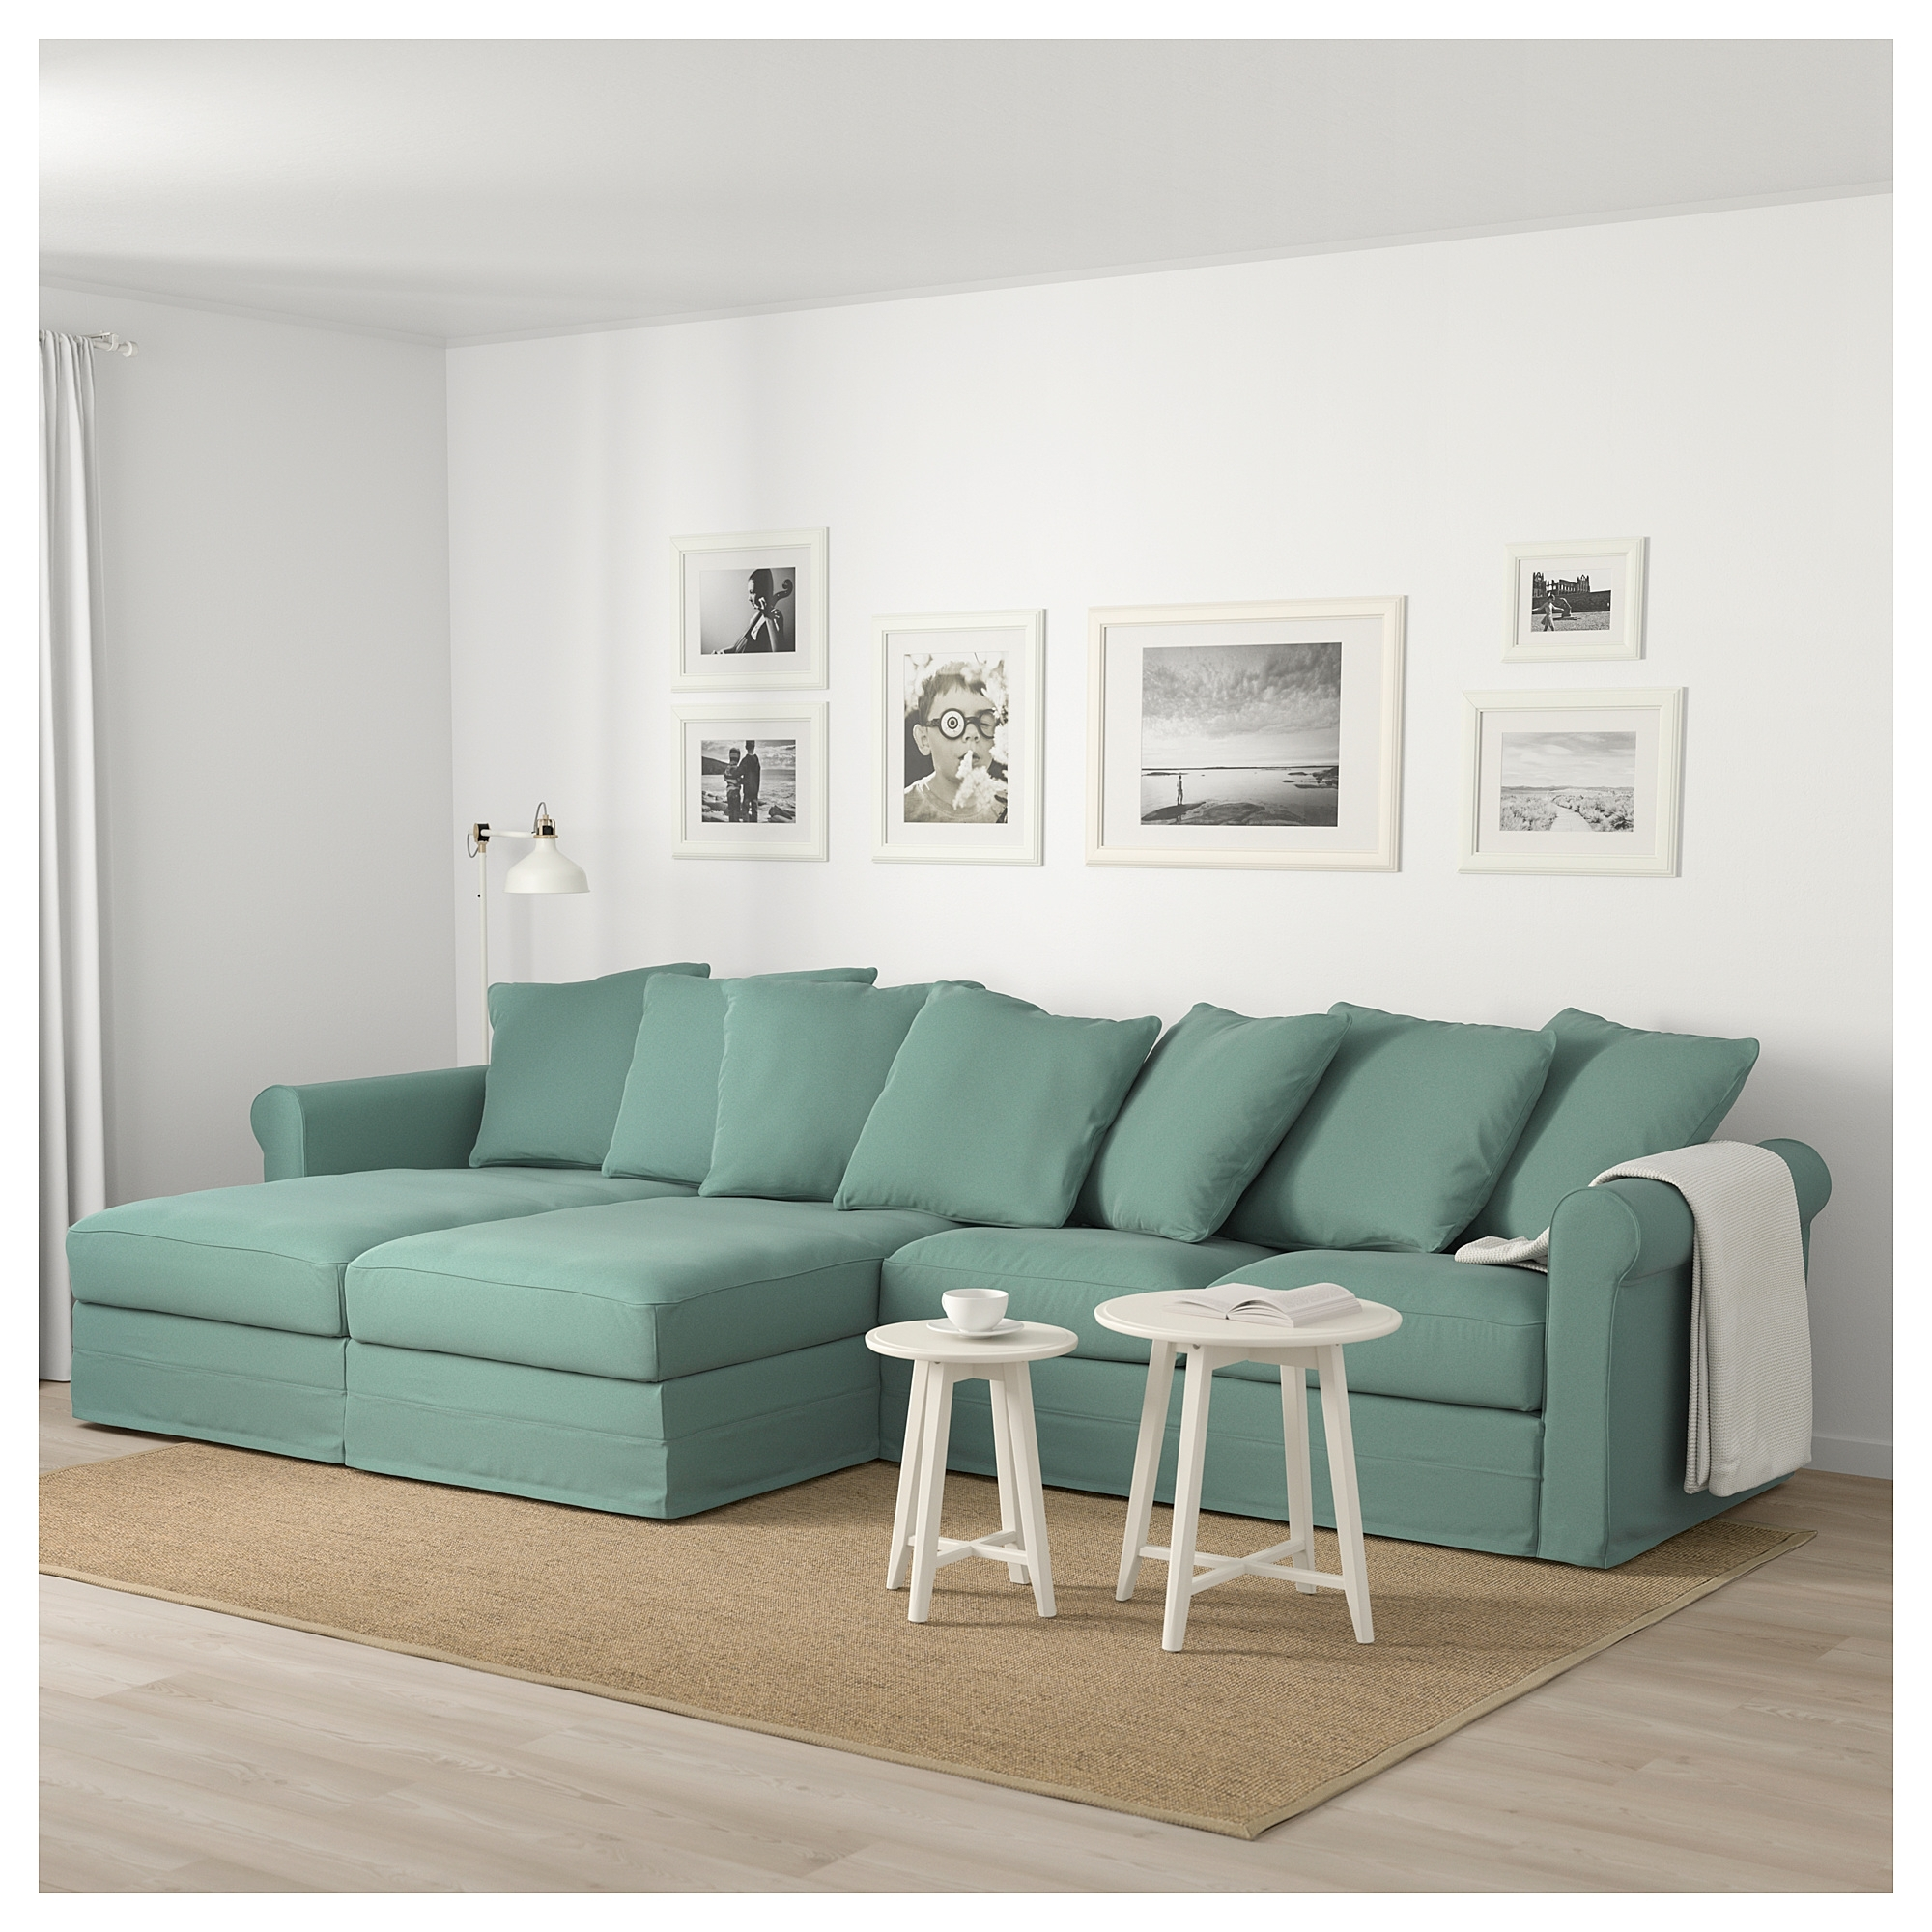 25 Top London Optical Reversible Sofa Chaise Sectionals  Sofa Ideas